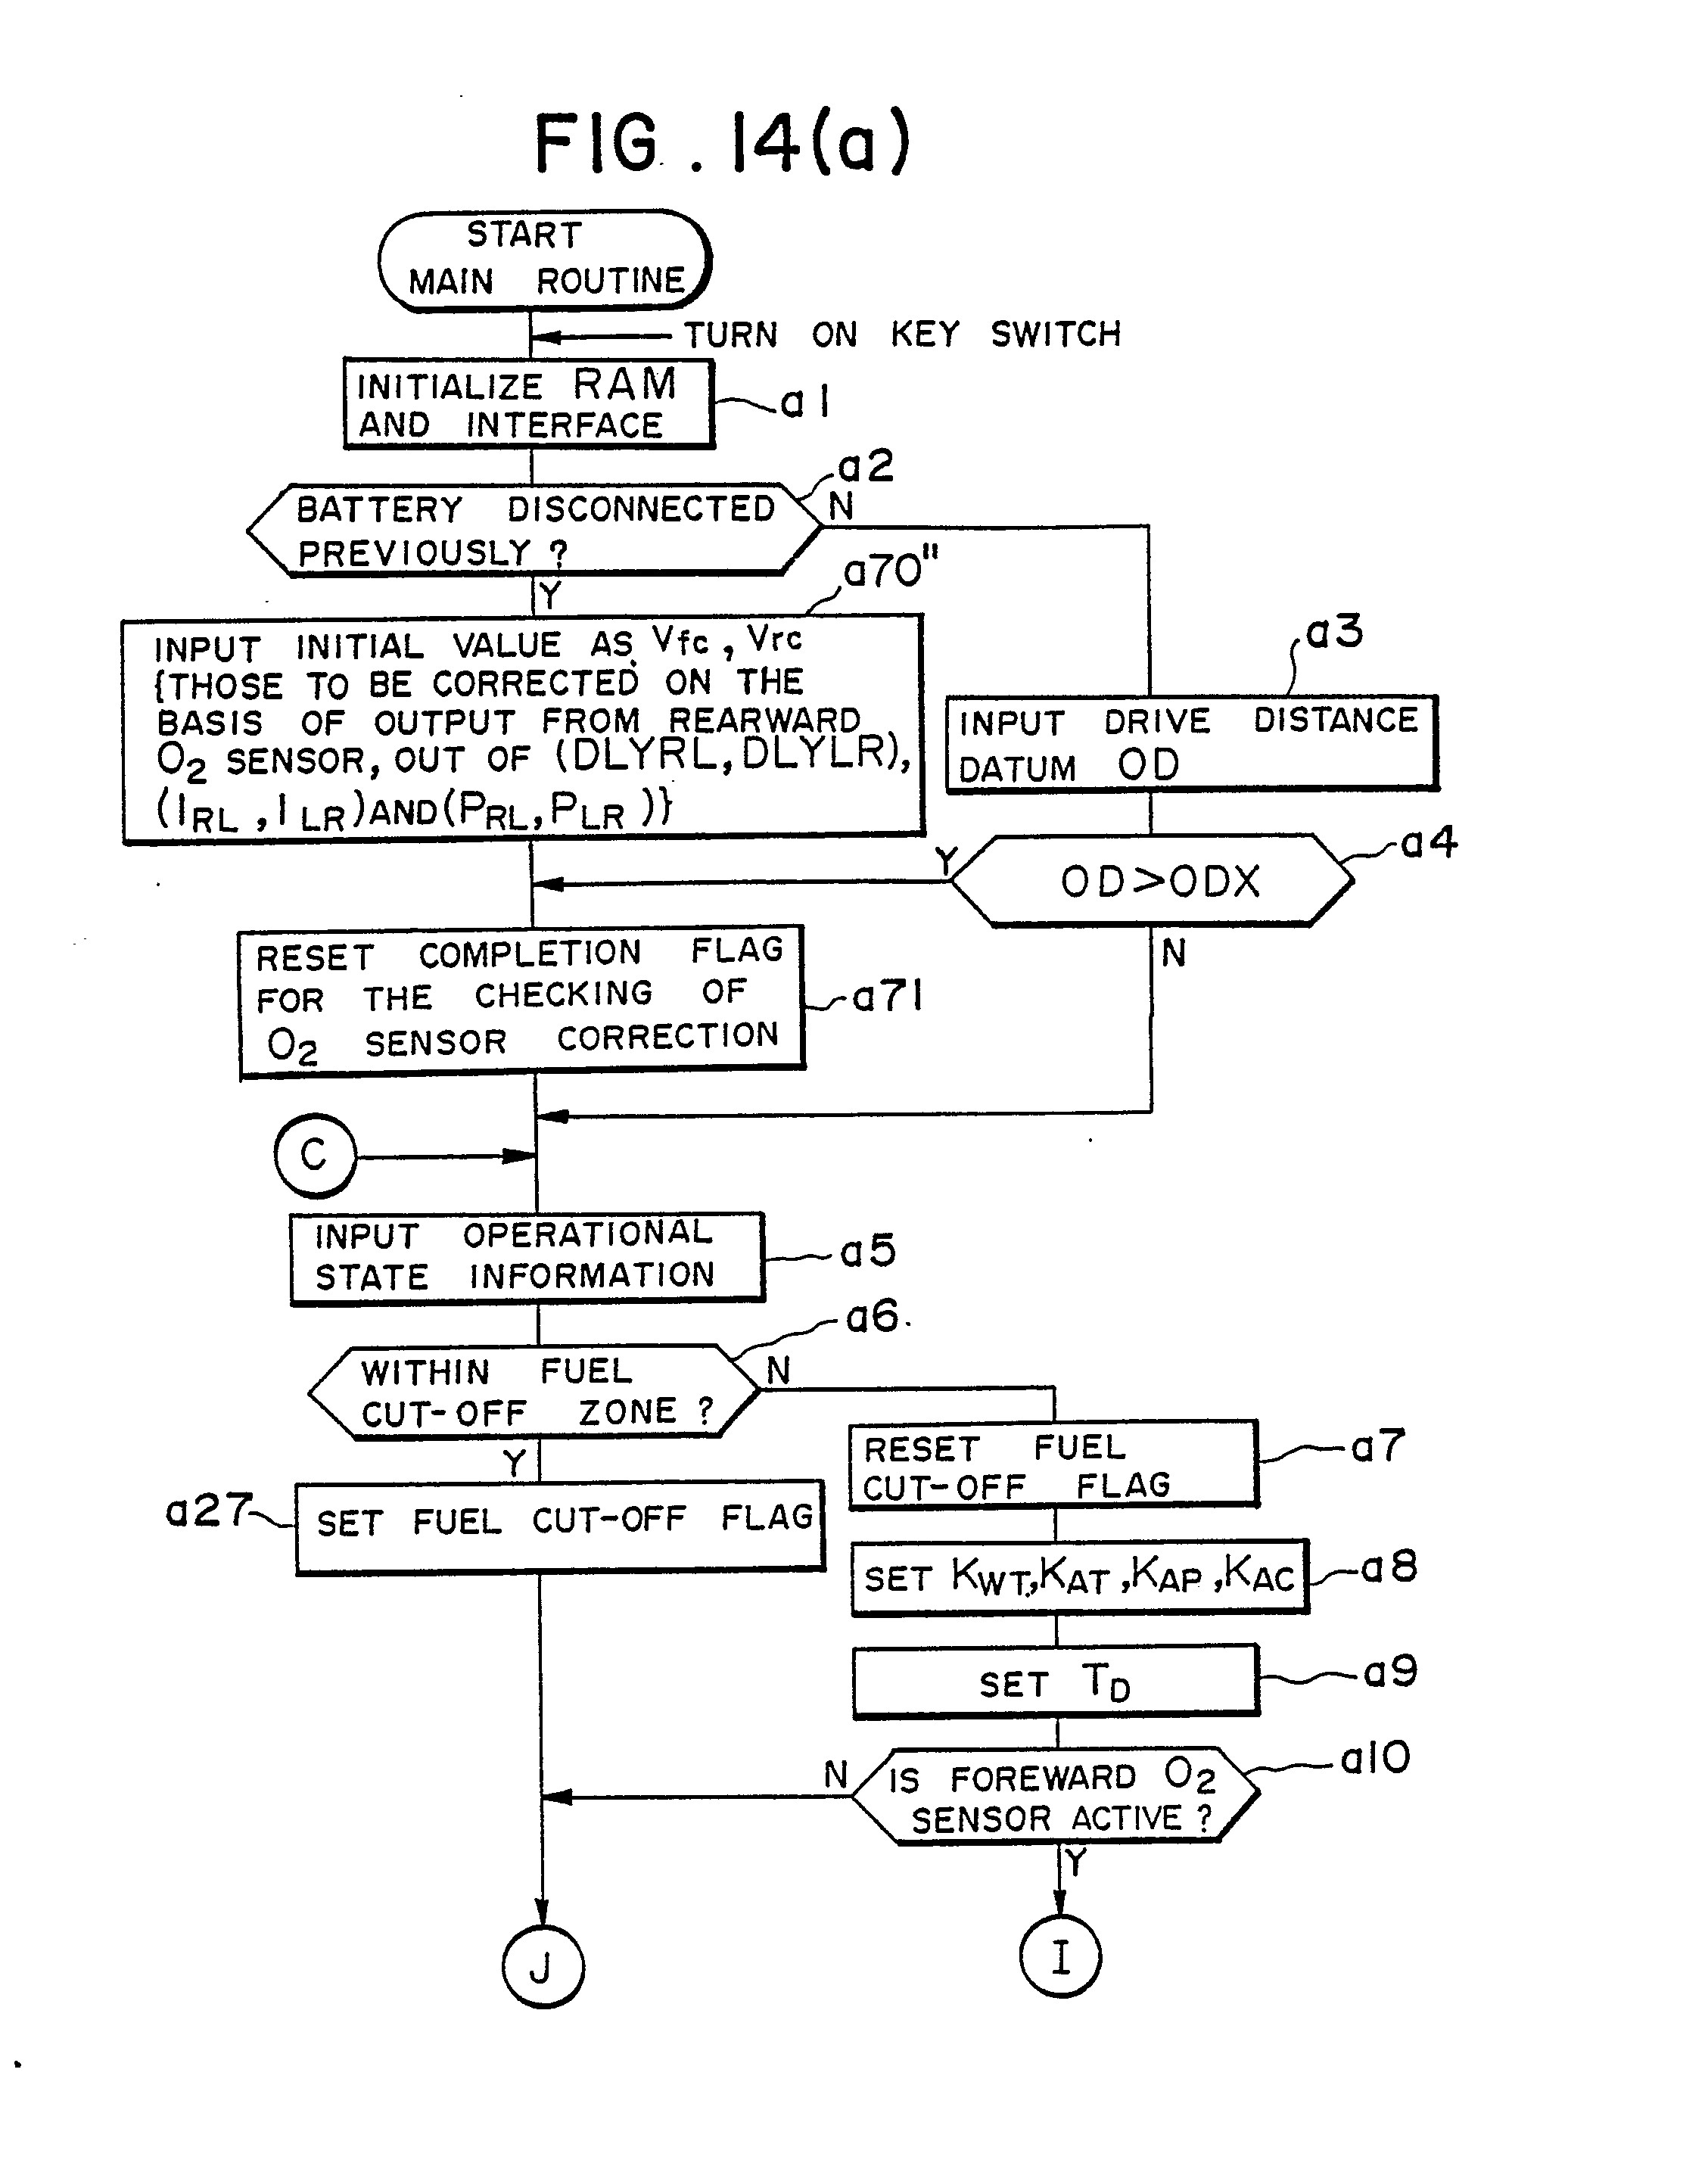 Internal Combustion Engine Diagram Patent Ep A2 Air Fuel Ratio Control System for Internal Of Internal Combustion Engine Diagram